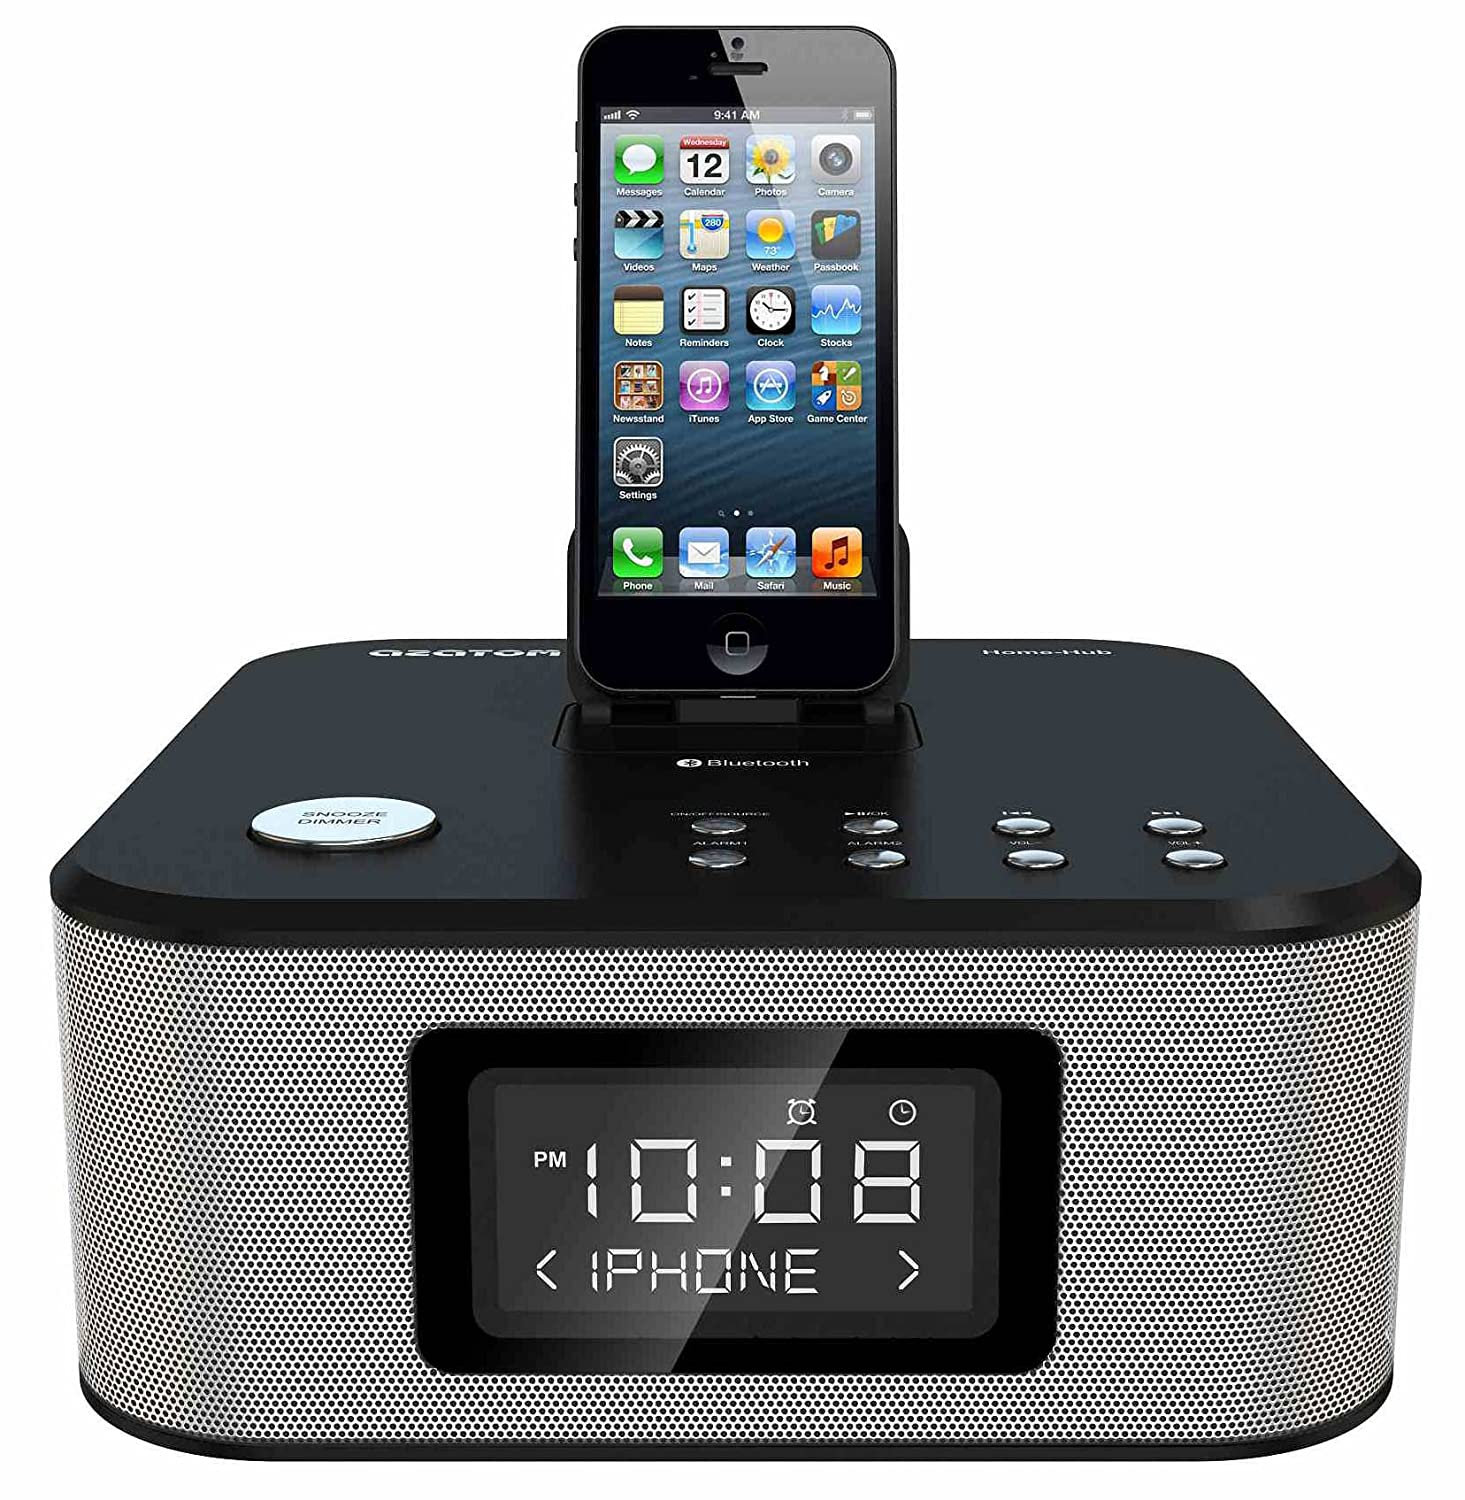 Phone Alarm Clock Dock For Android Phones top 10 best portable mp3 audio docks for android smartphones 2016 2017 on flipboard